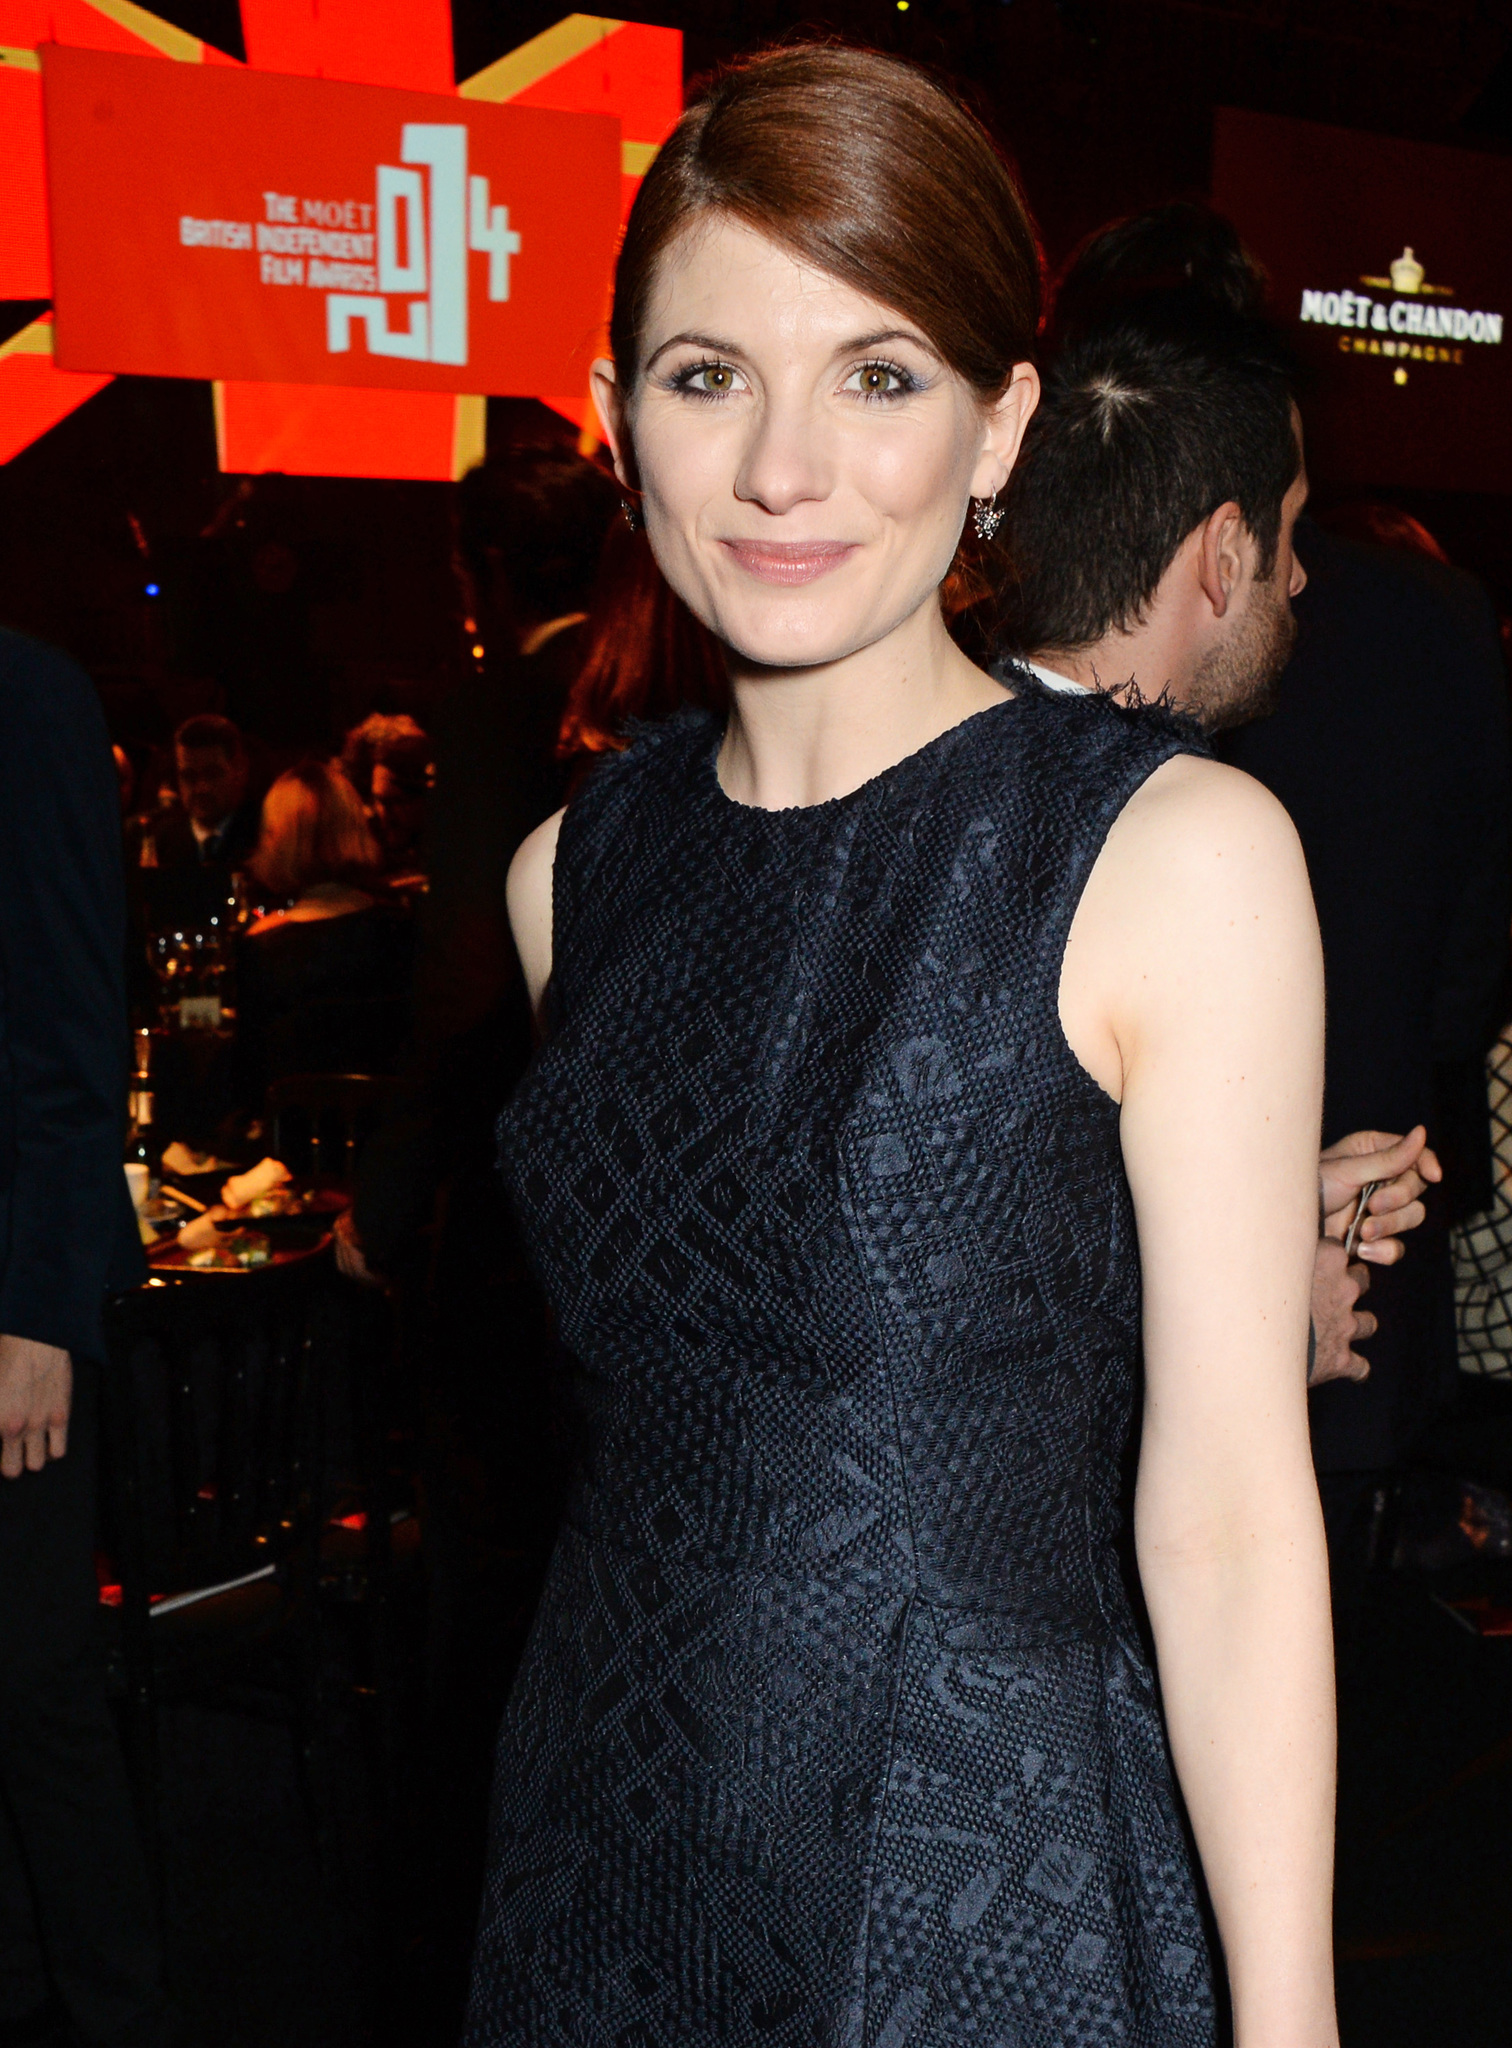 Young Jodie Whittaker nude (28 photo), Topless, Paparazzi, Feet, braless 2020